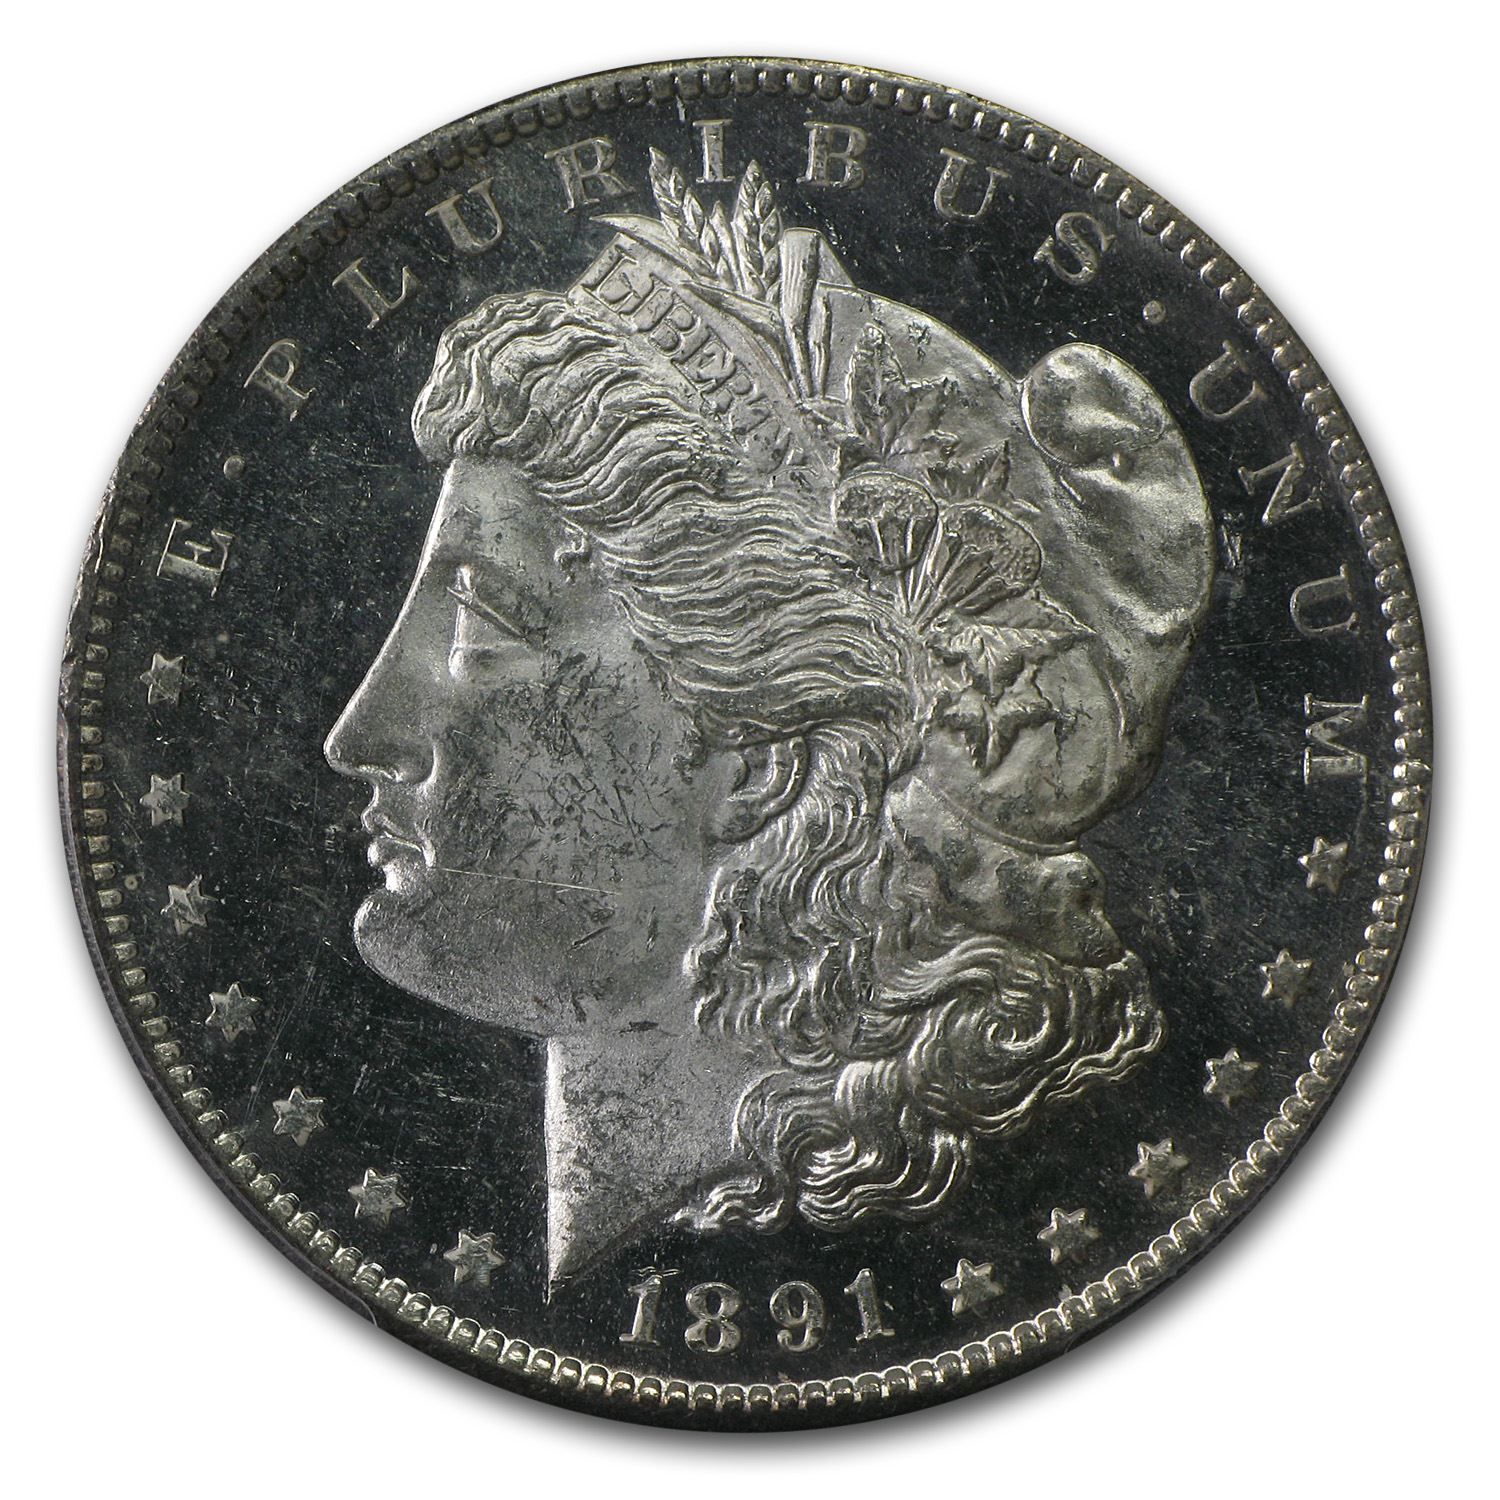 1891-S Morgan Dollar - MS-63 PL Proof Like PCGS